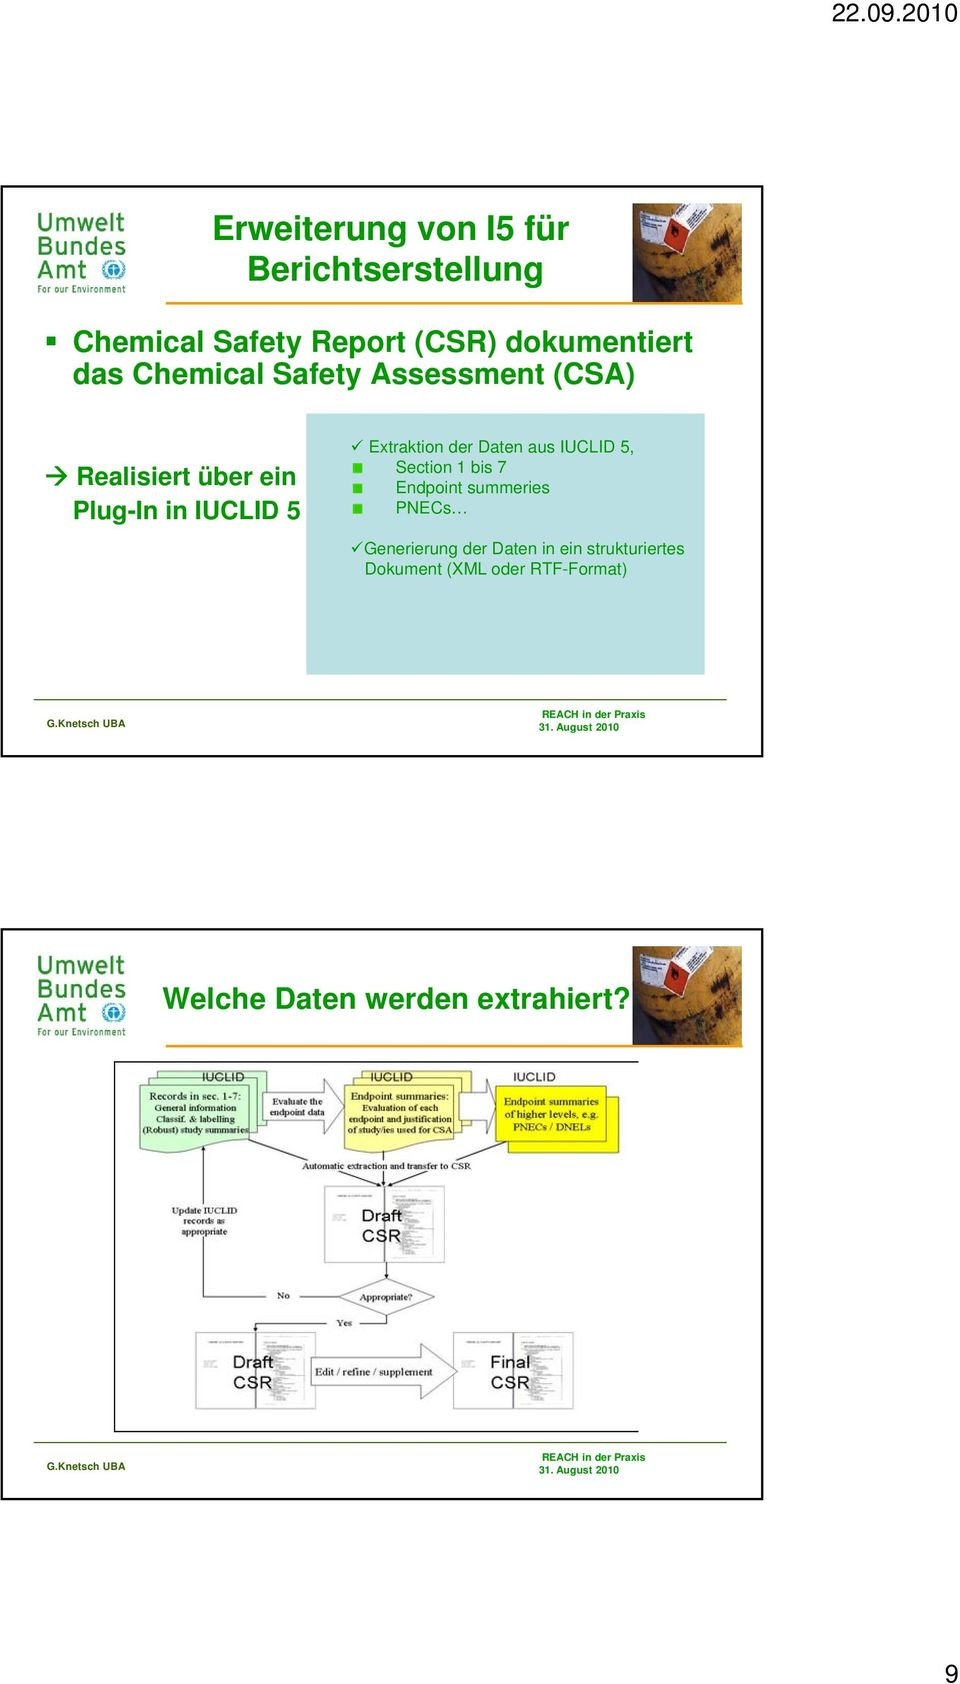 Extraktion der Daten aus IUCLID 5, Section 1 bis 7 Endpoint summeries PNECs